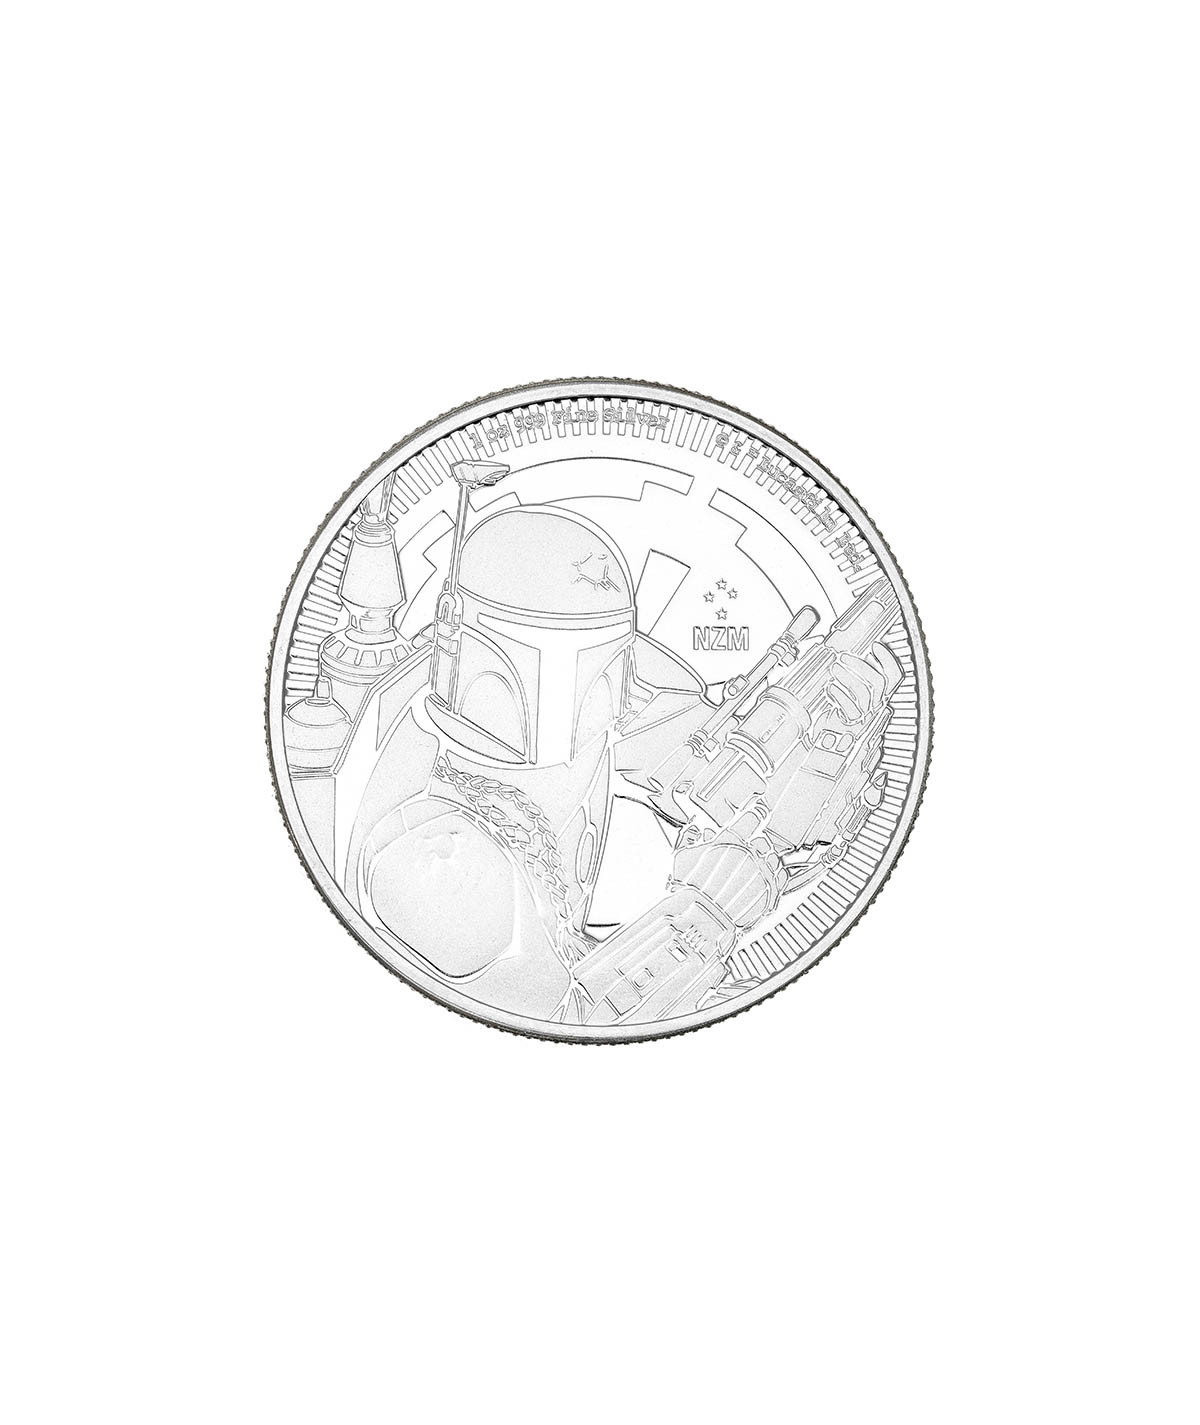 1oz Silver Coin Boba Fett from 2020 - Star Wars Series